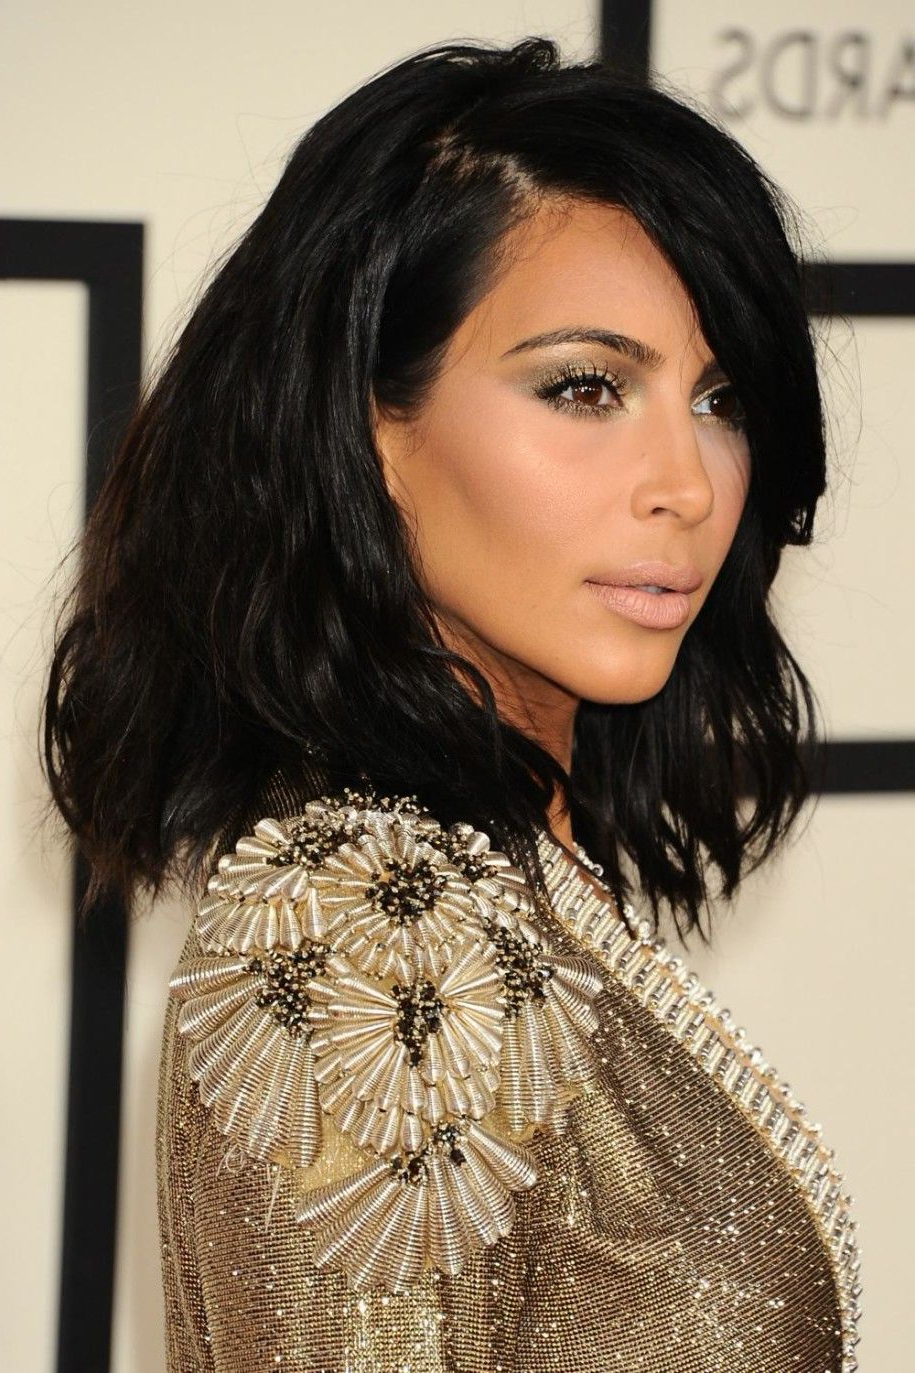 Celebrity Hairstyles: New Short Hairstyle Kim Kardashian At Grammy With Kim Kardashian Short Hairstyles (View 4 of 25)